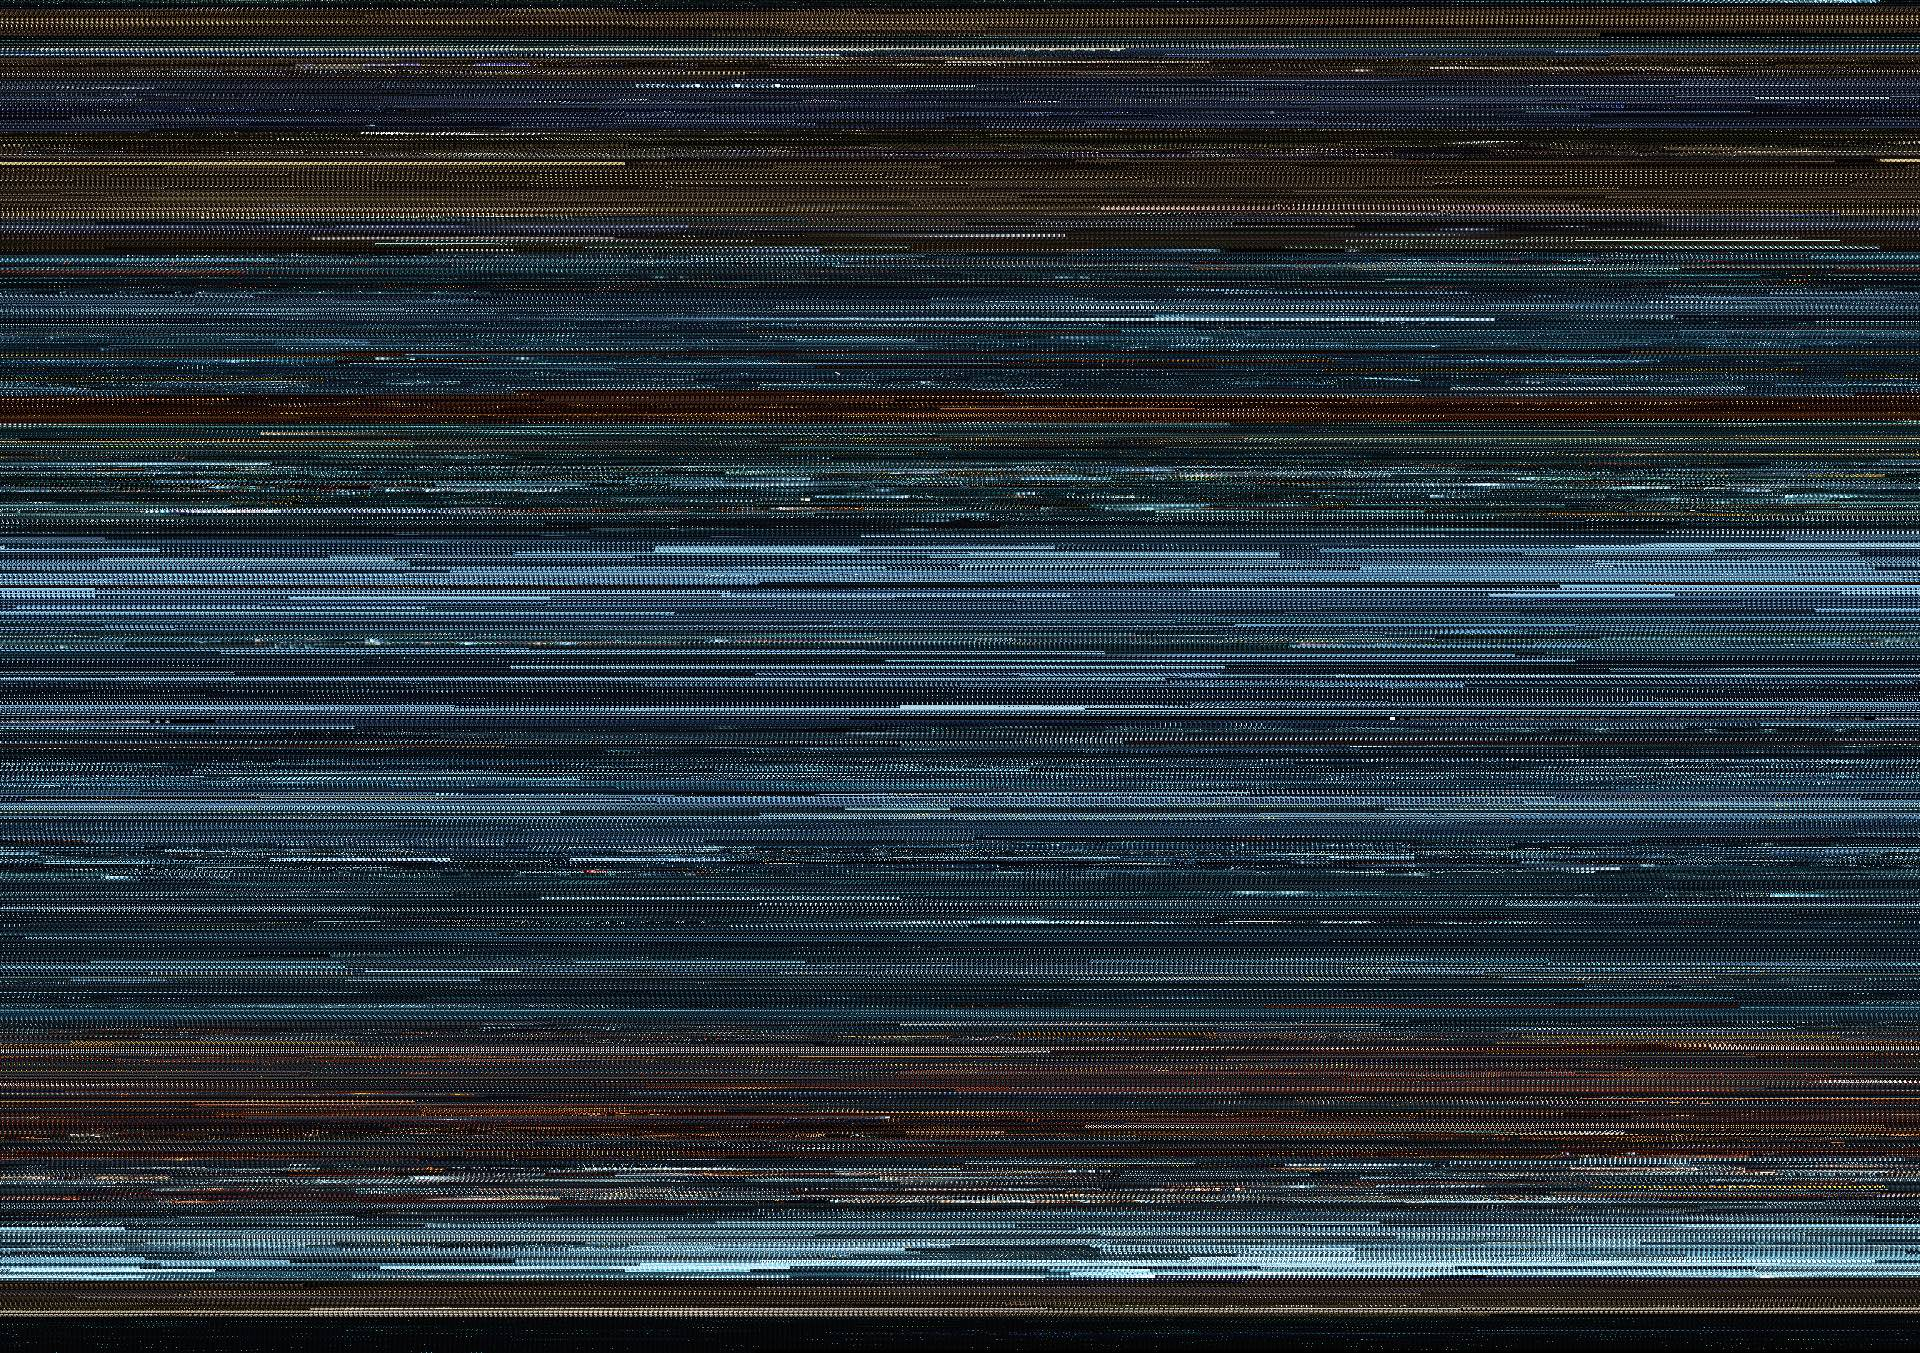 Tron Legacy compressed so that each frame is a single 5x5 pixel